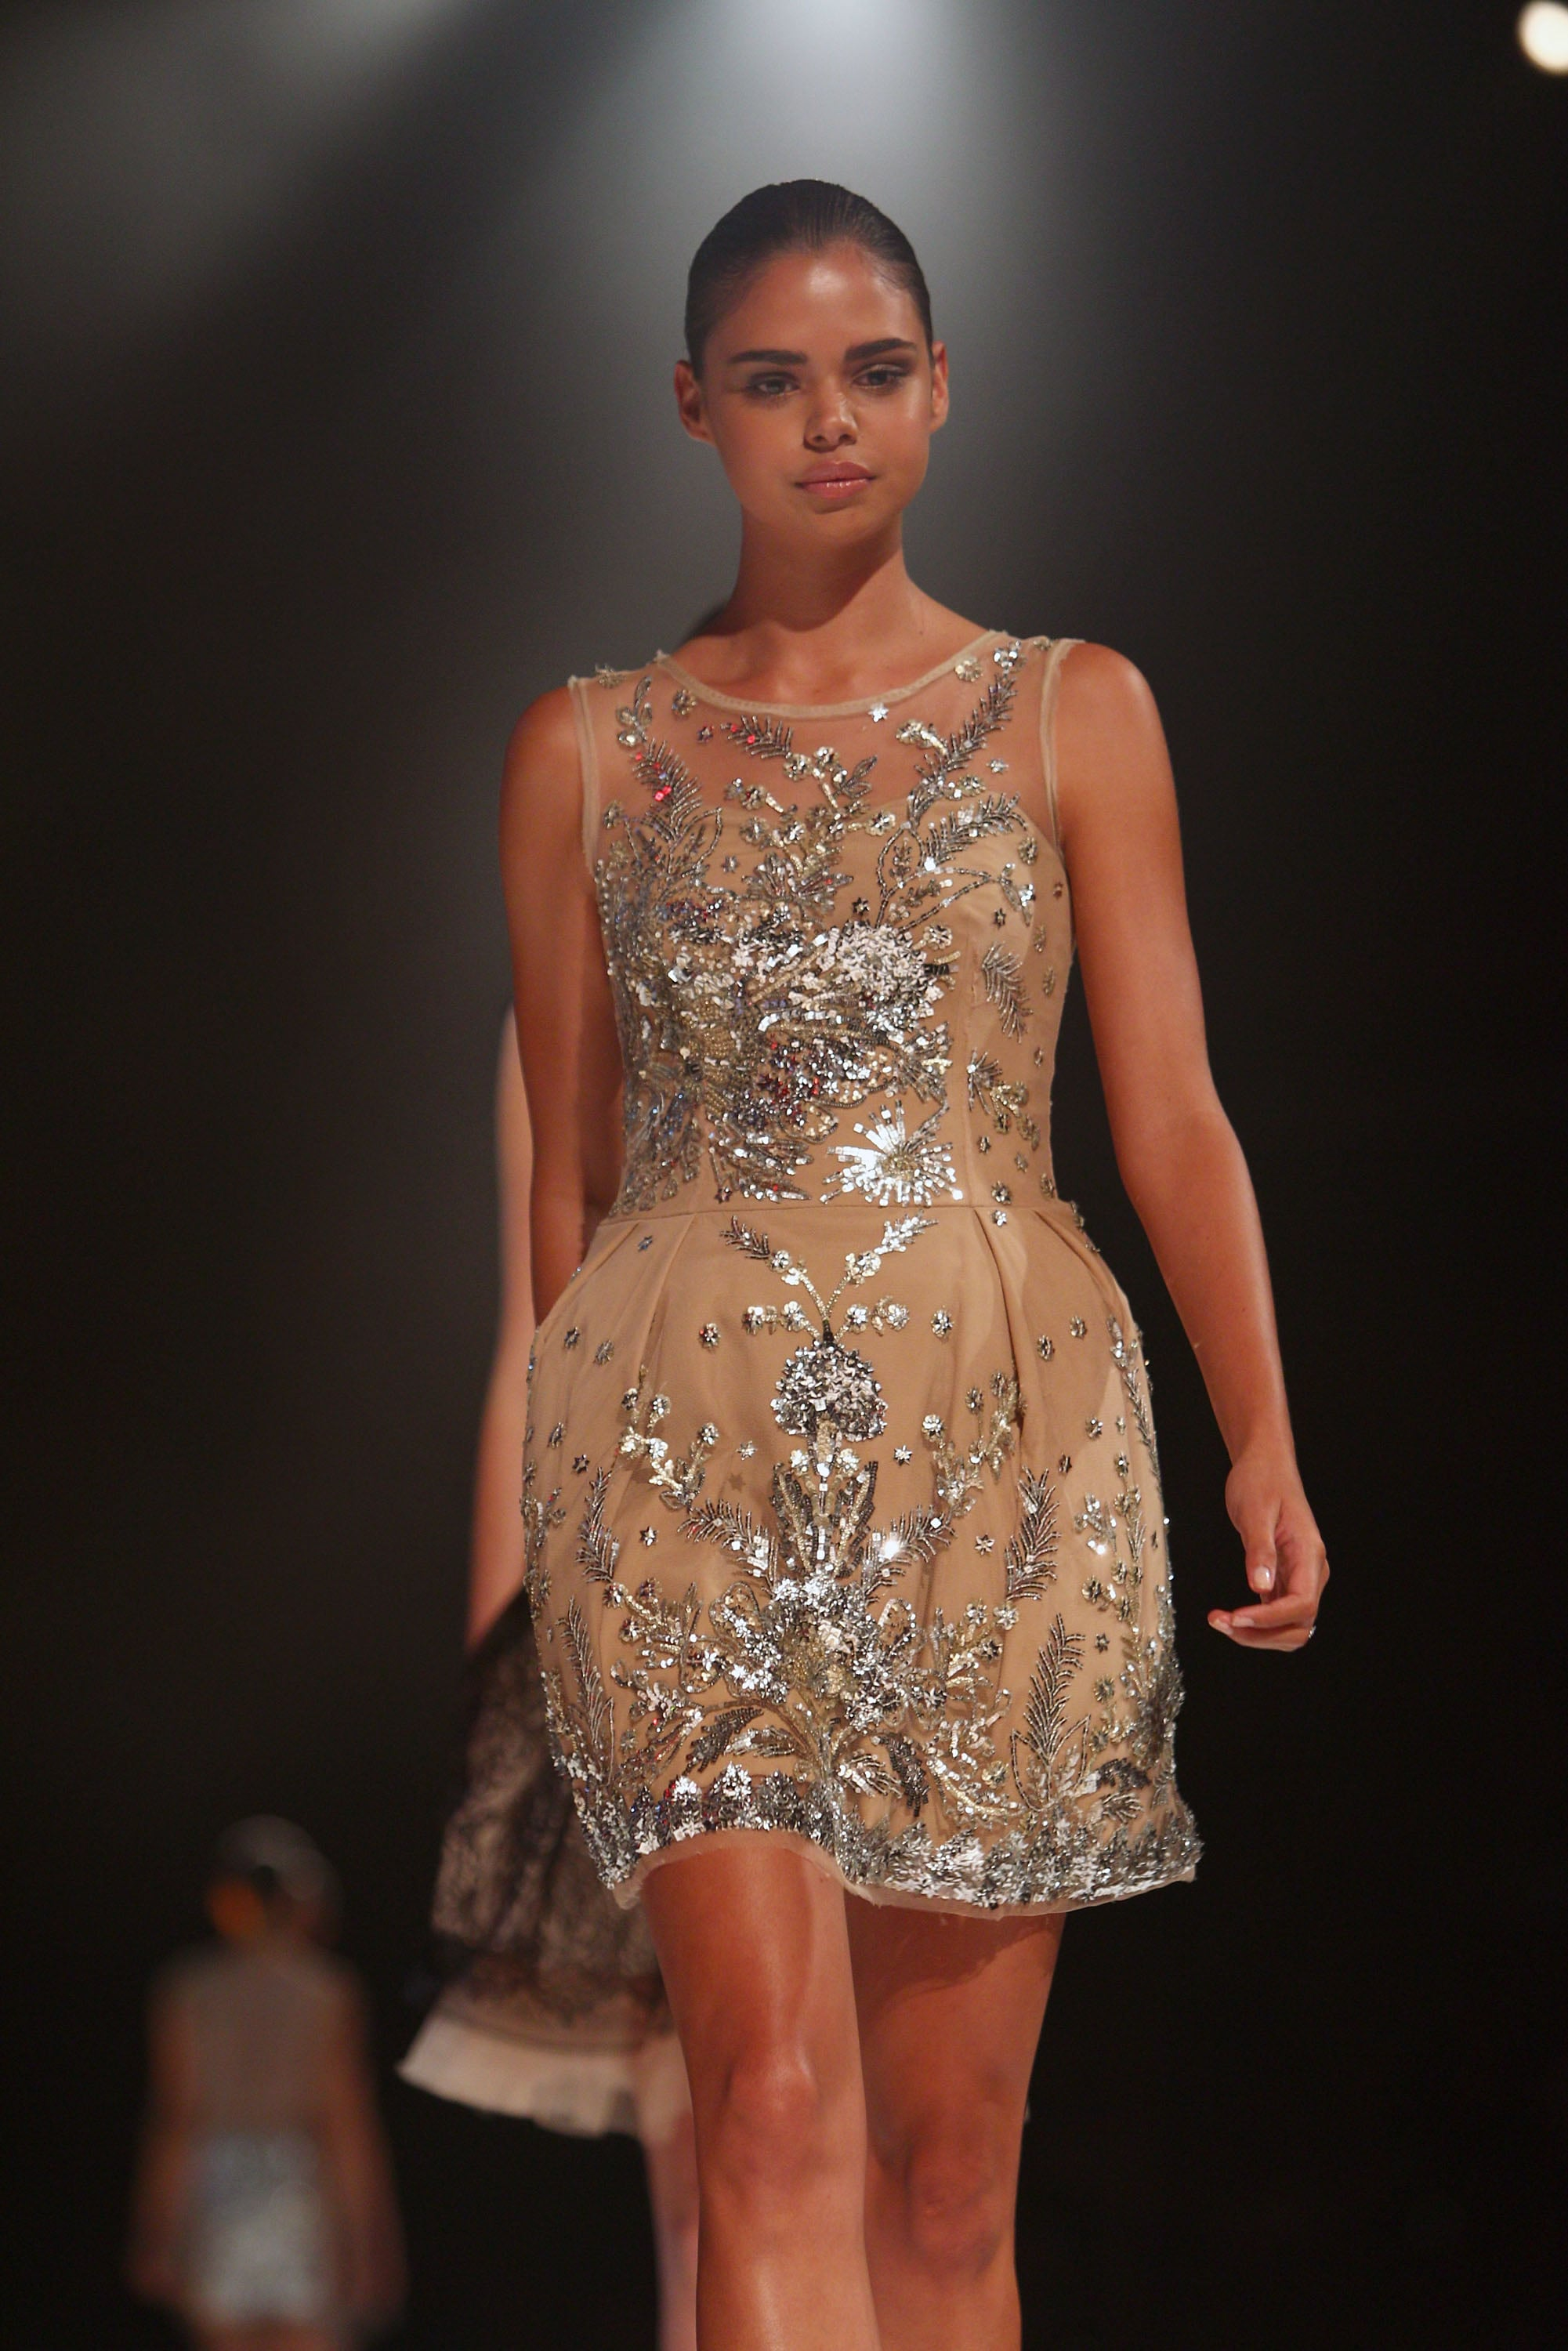 Samantha Harris modelled this gorge frock as part of the runway component to the LMFF show.